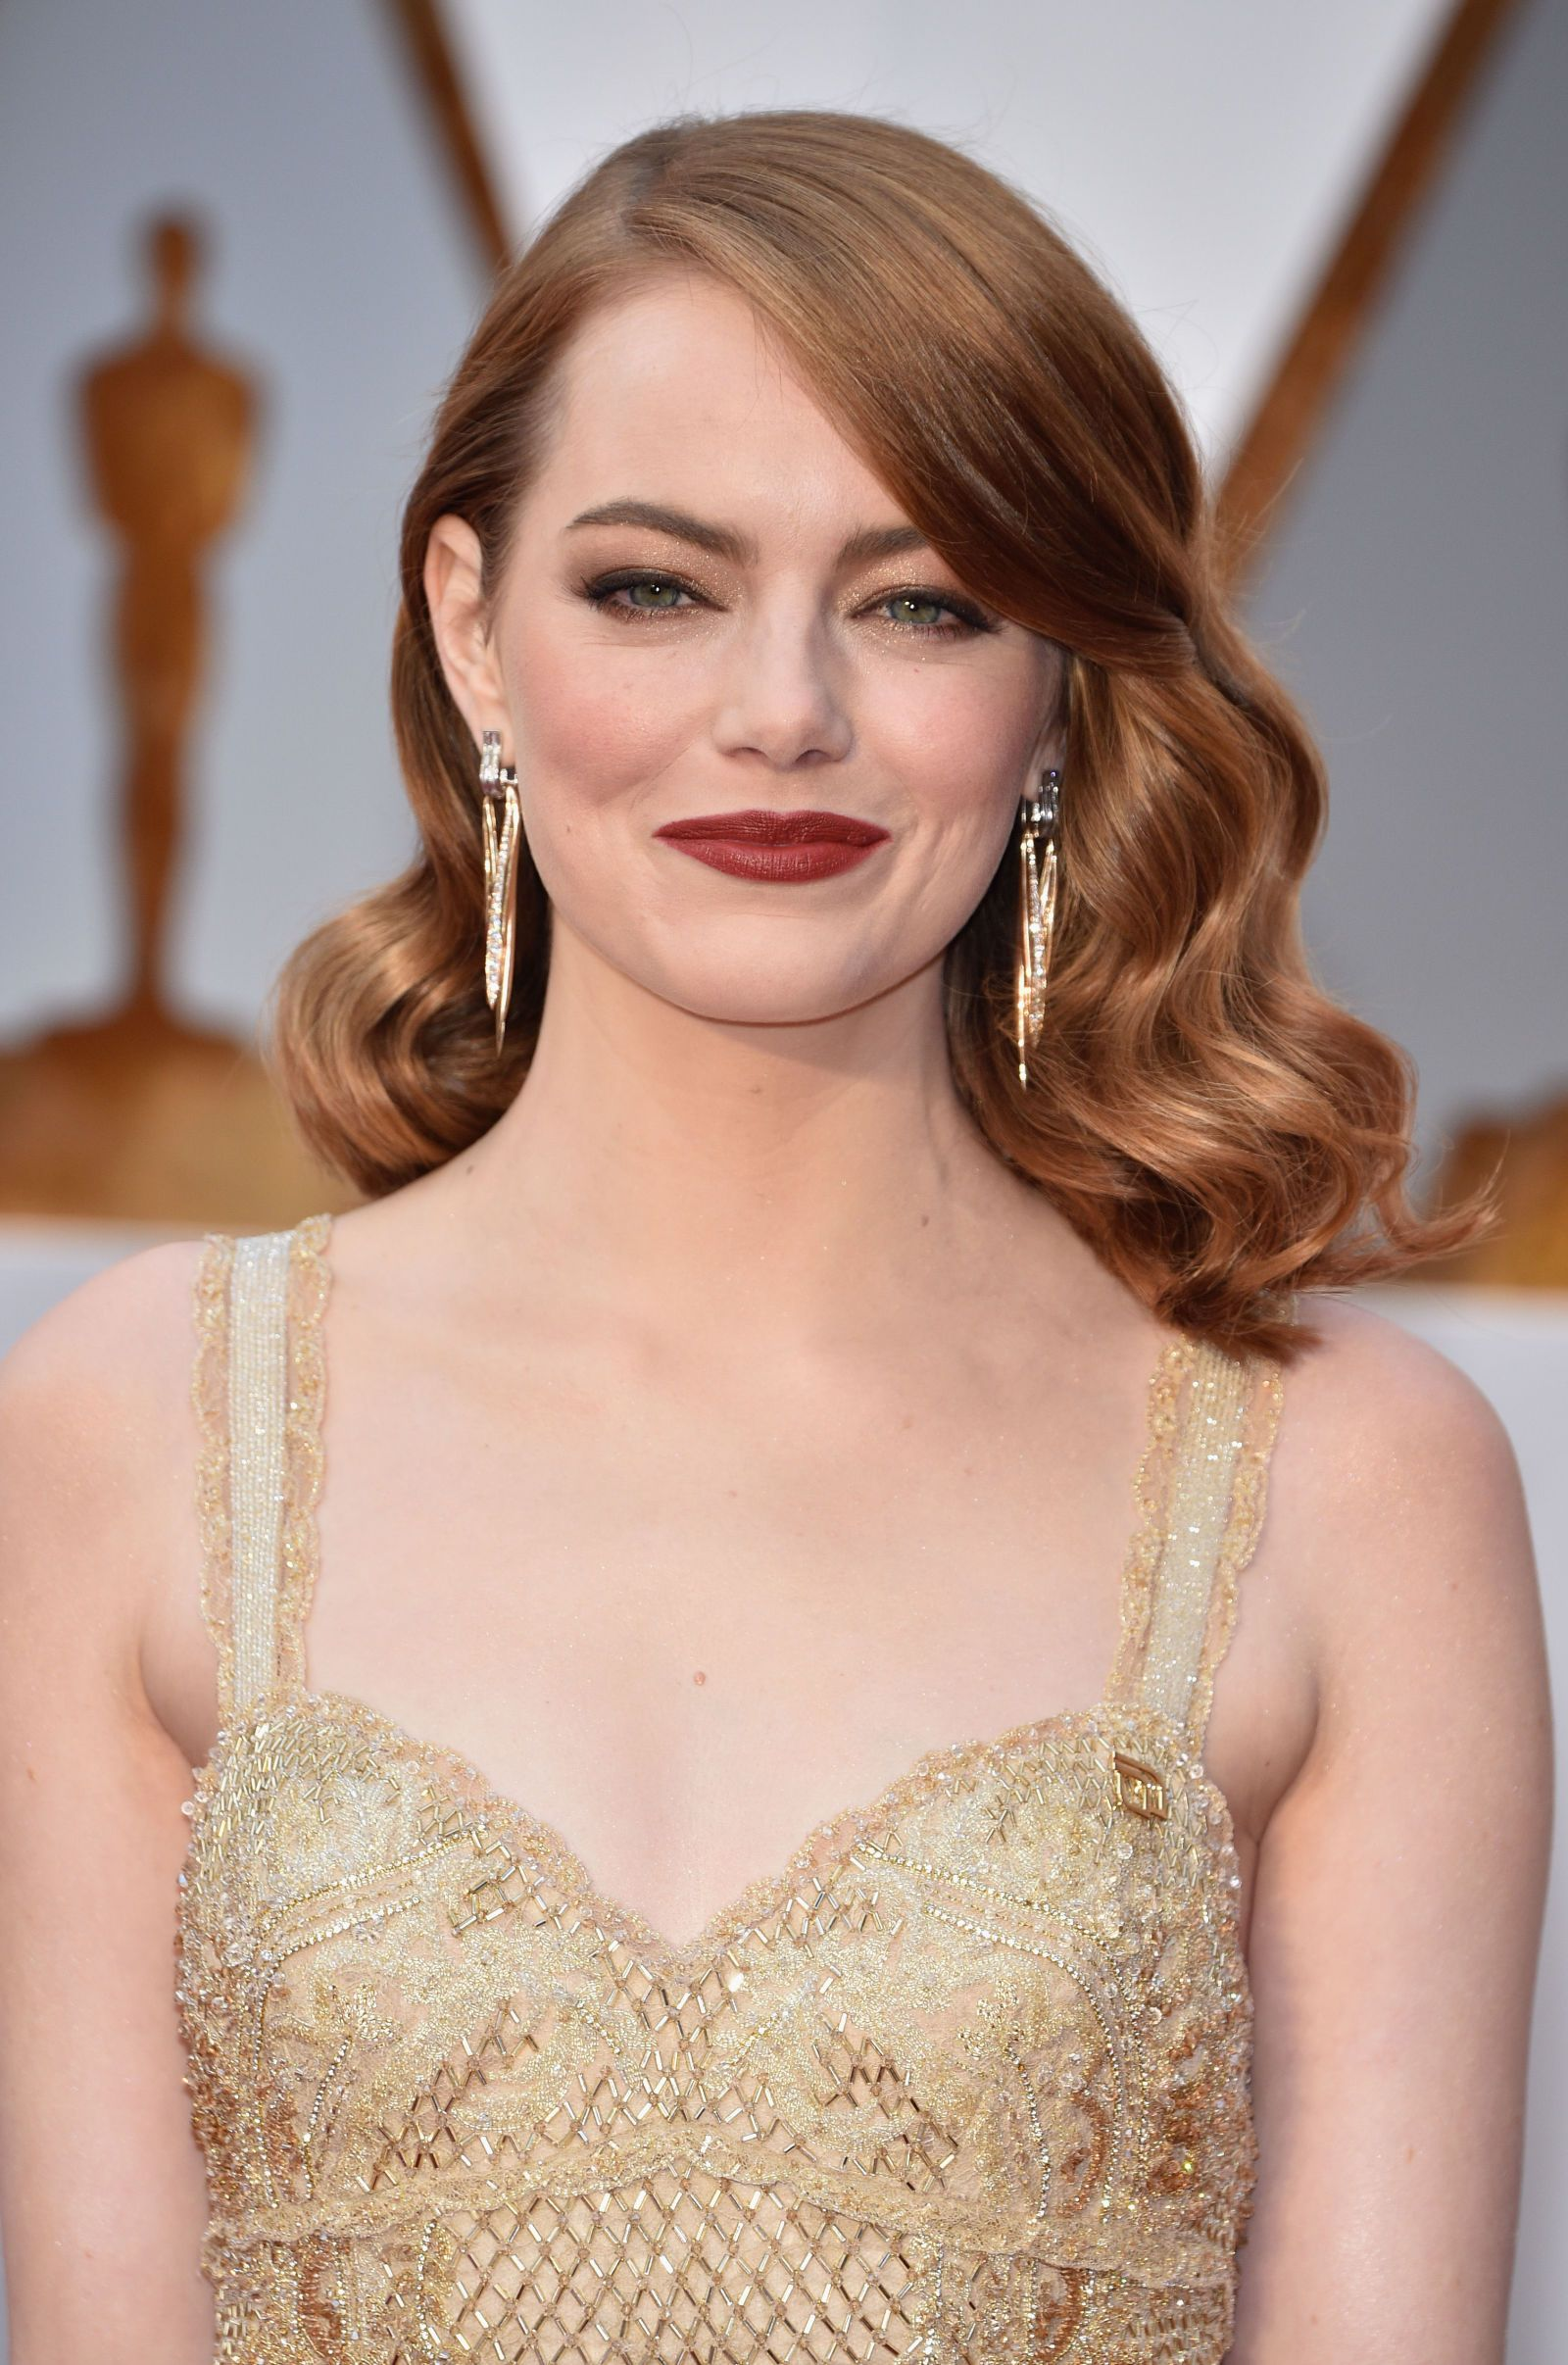 the 13 best beauty looks from the 2017 oscars | hairstyles